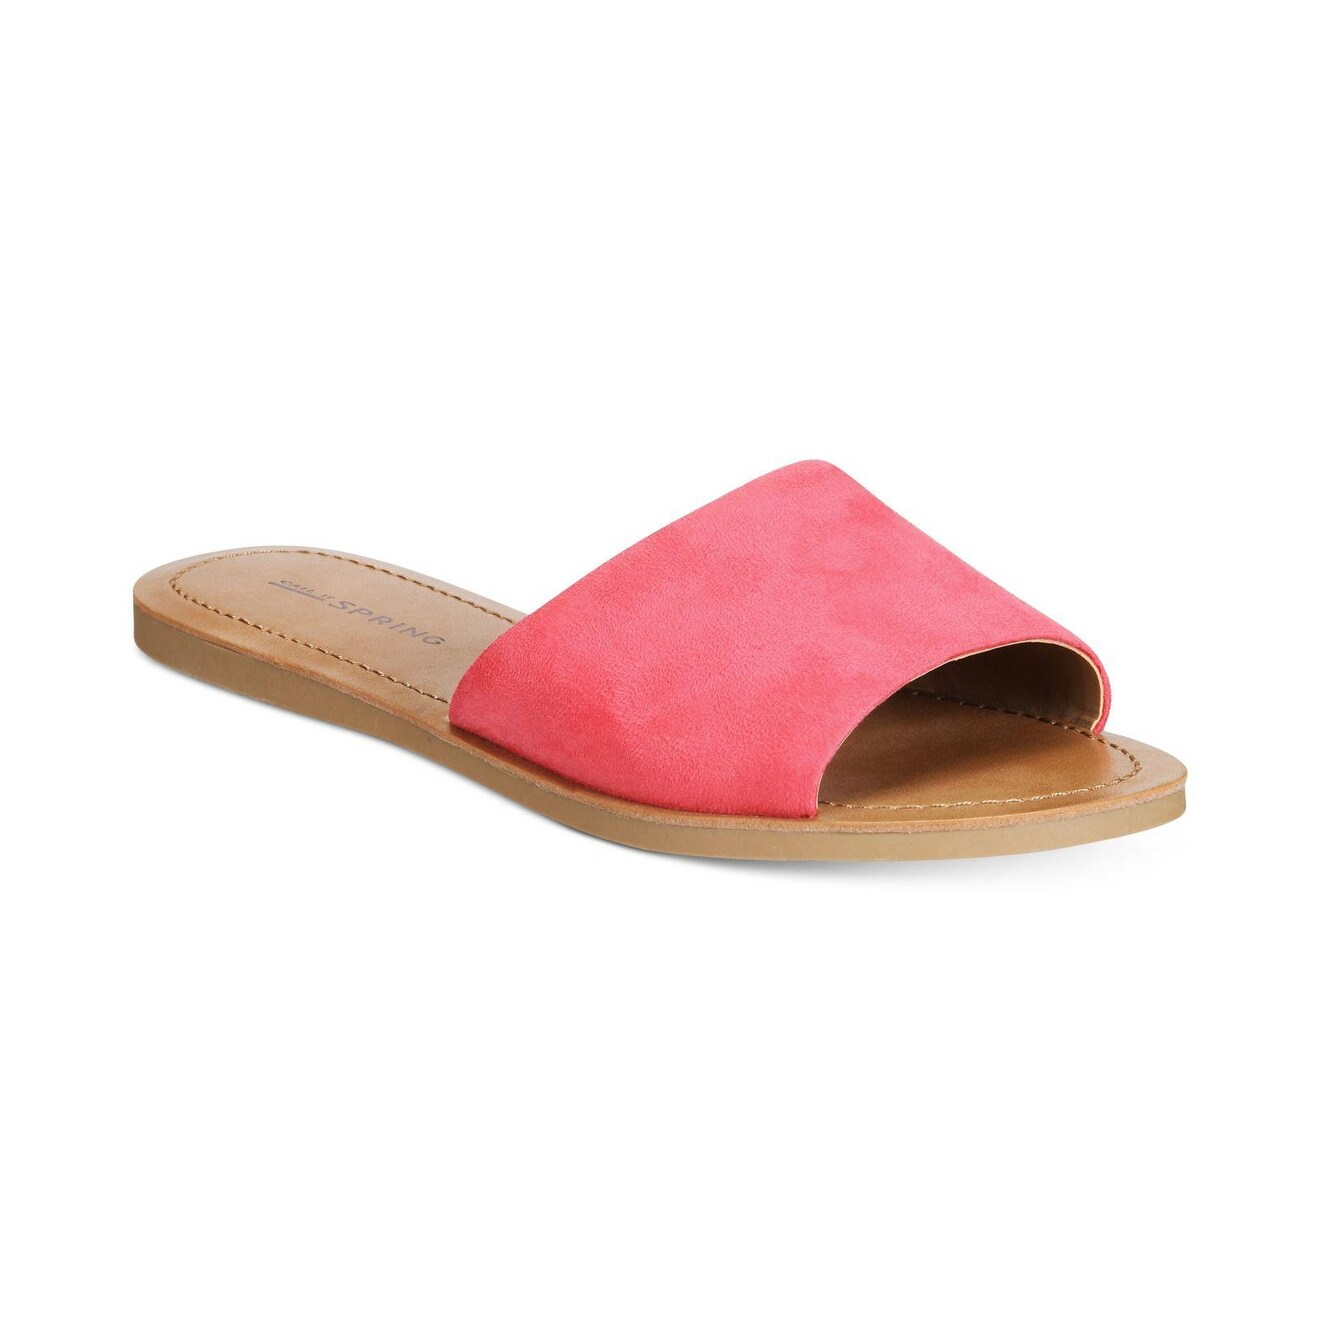 1a2b8c225 Shop Call It Spring Womens Thirenia Open Toe Casual Slide Sandals - Free  Shipping On Orders Over  45 - Overstock - 17678010